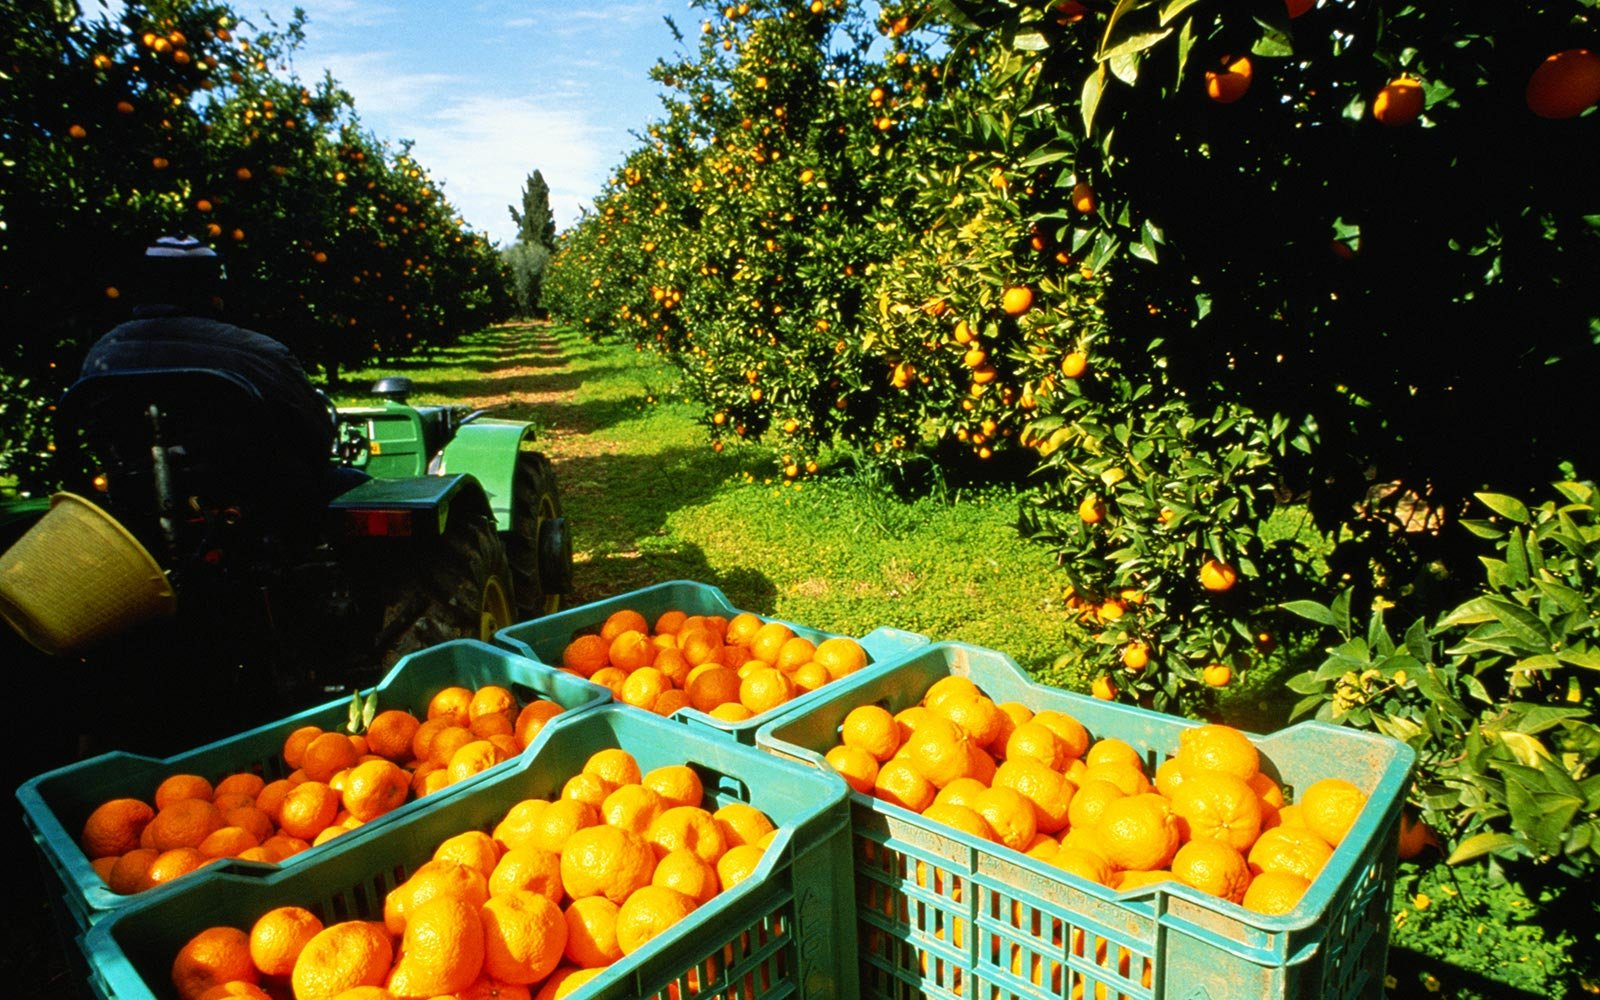 Sicily Citrus Grove Harvest